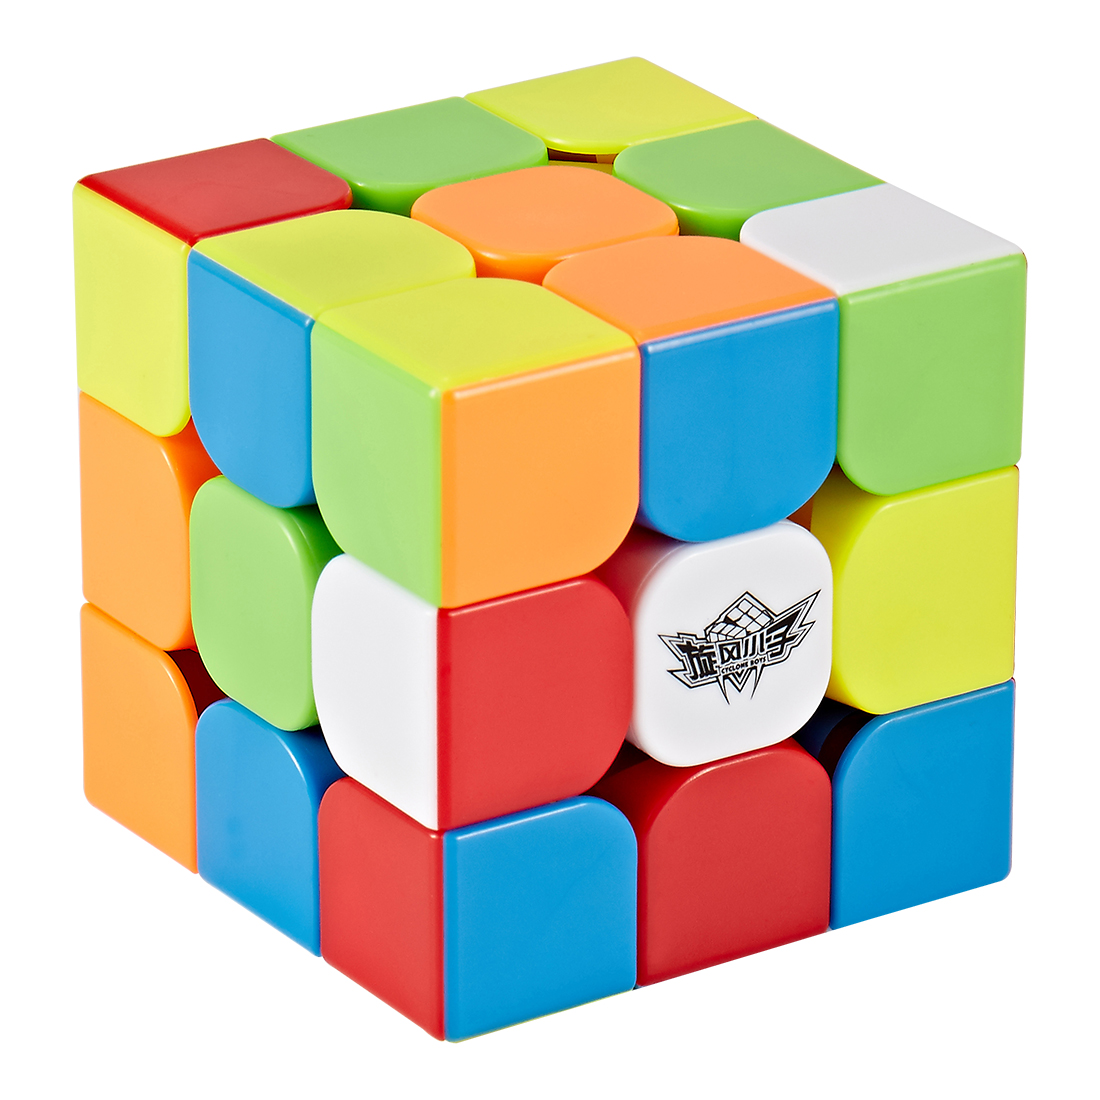 Cyclone Boys Feijue 3x3 Magnetic Version Magic Cube Stickerless Speed Cube Puzzle Toy - Colorful